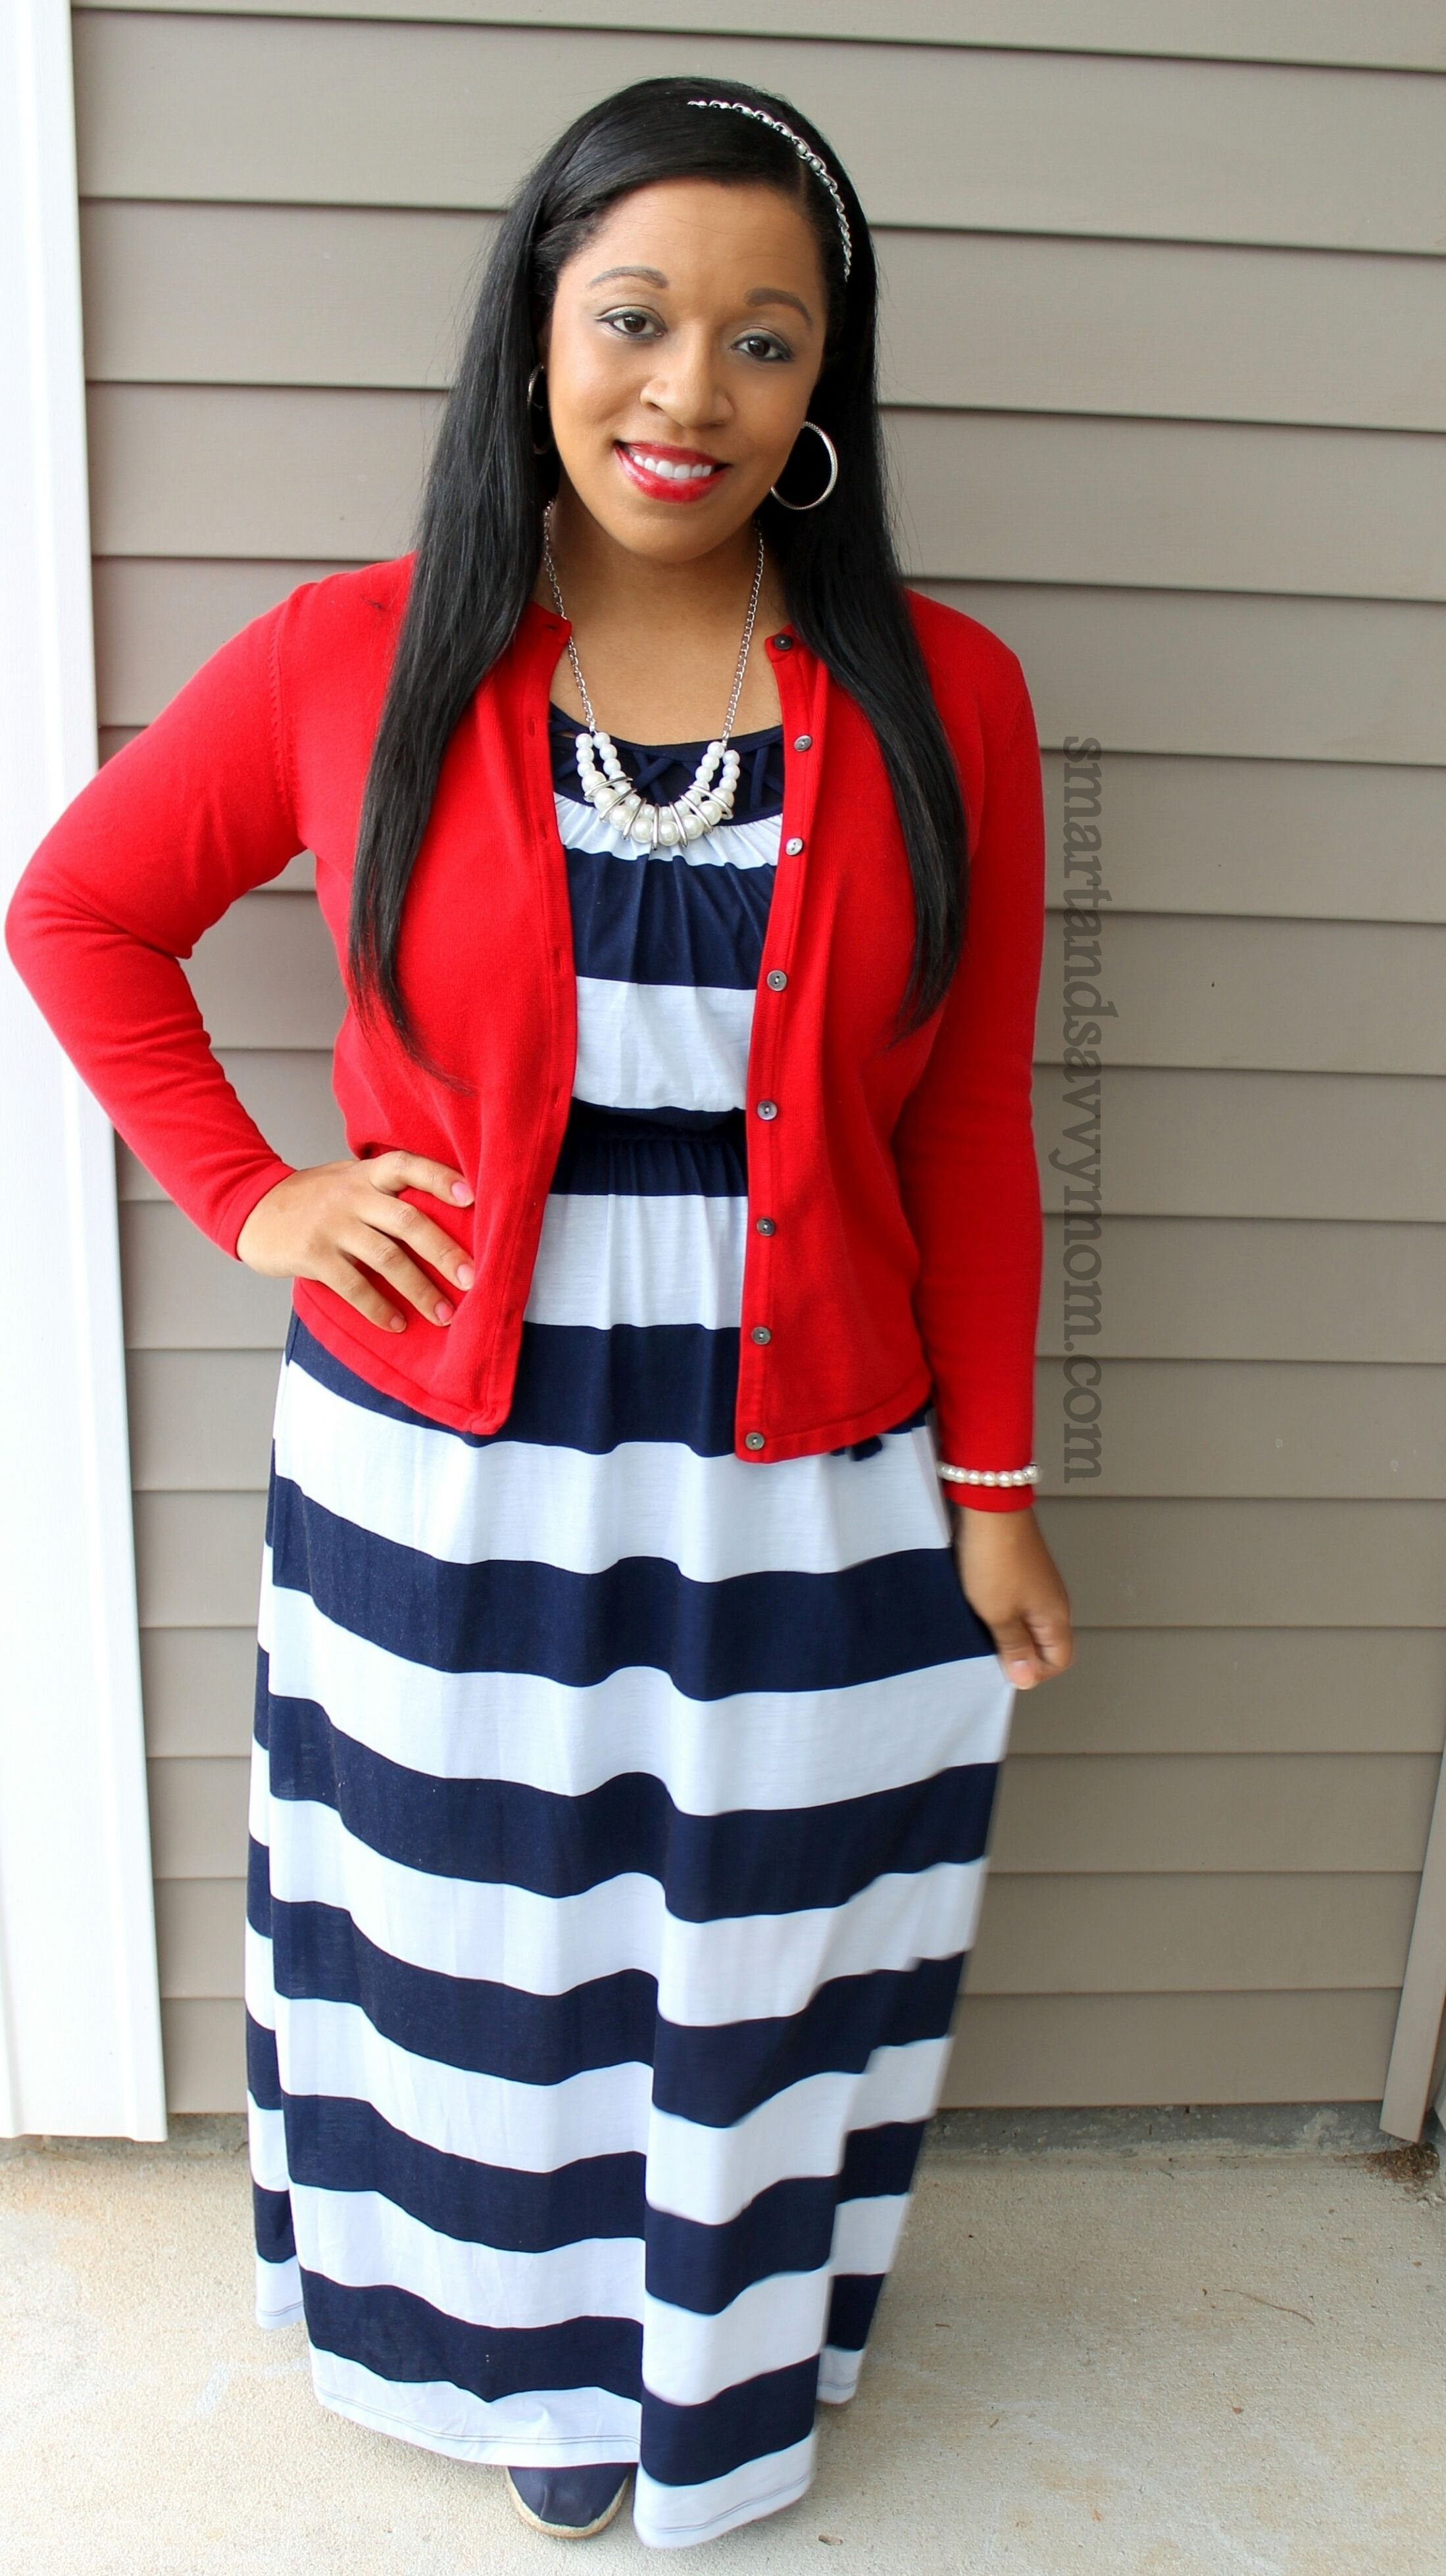 10 Trendy Red White And Blue Outfit Ideas